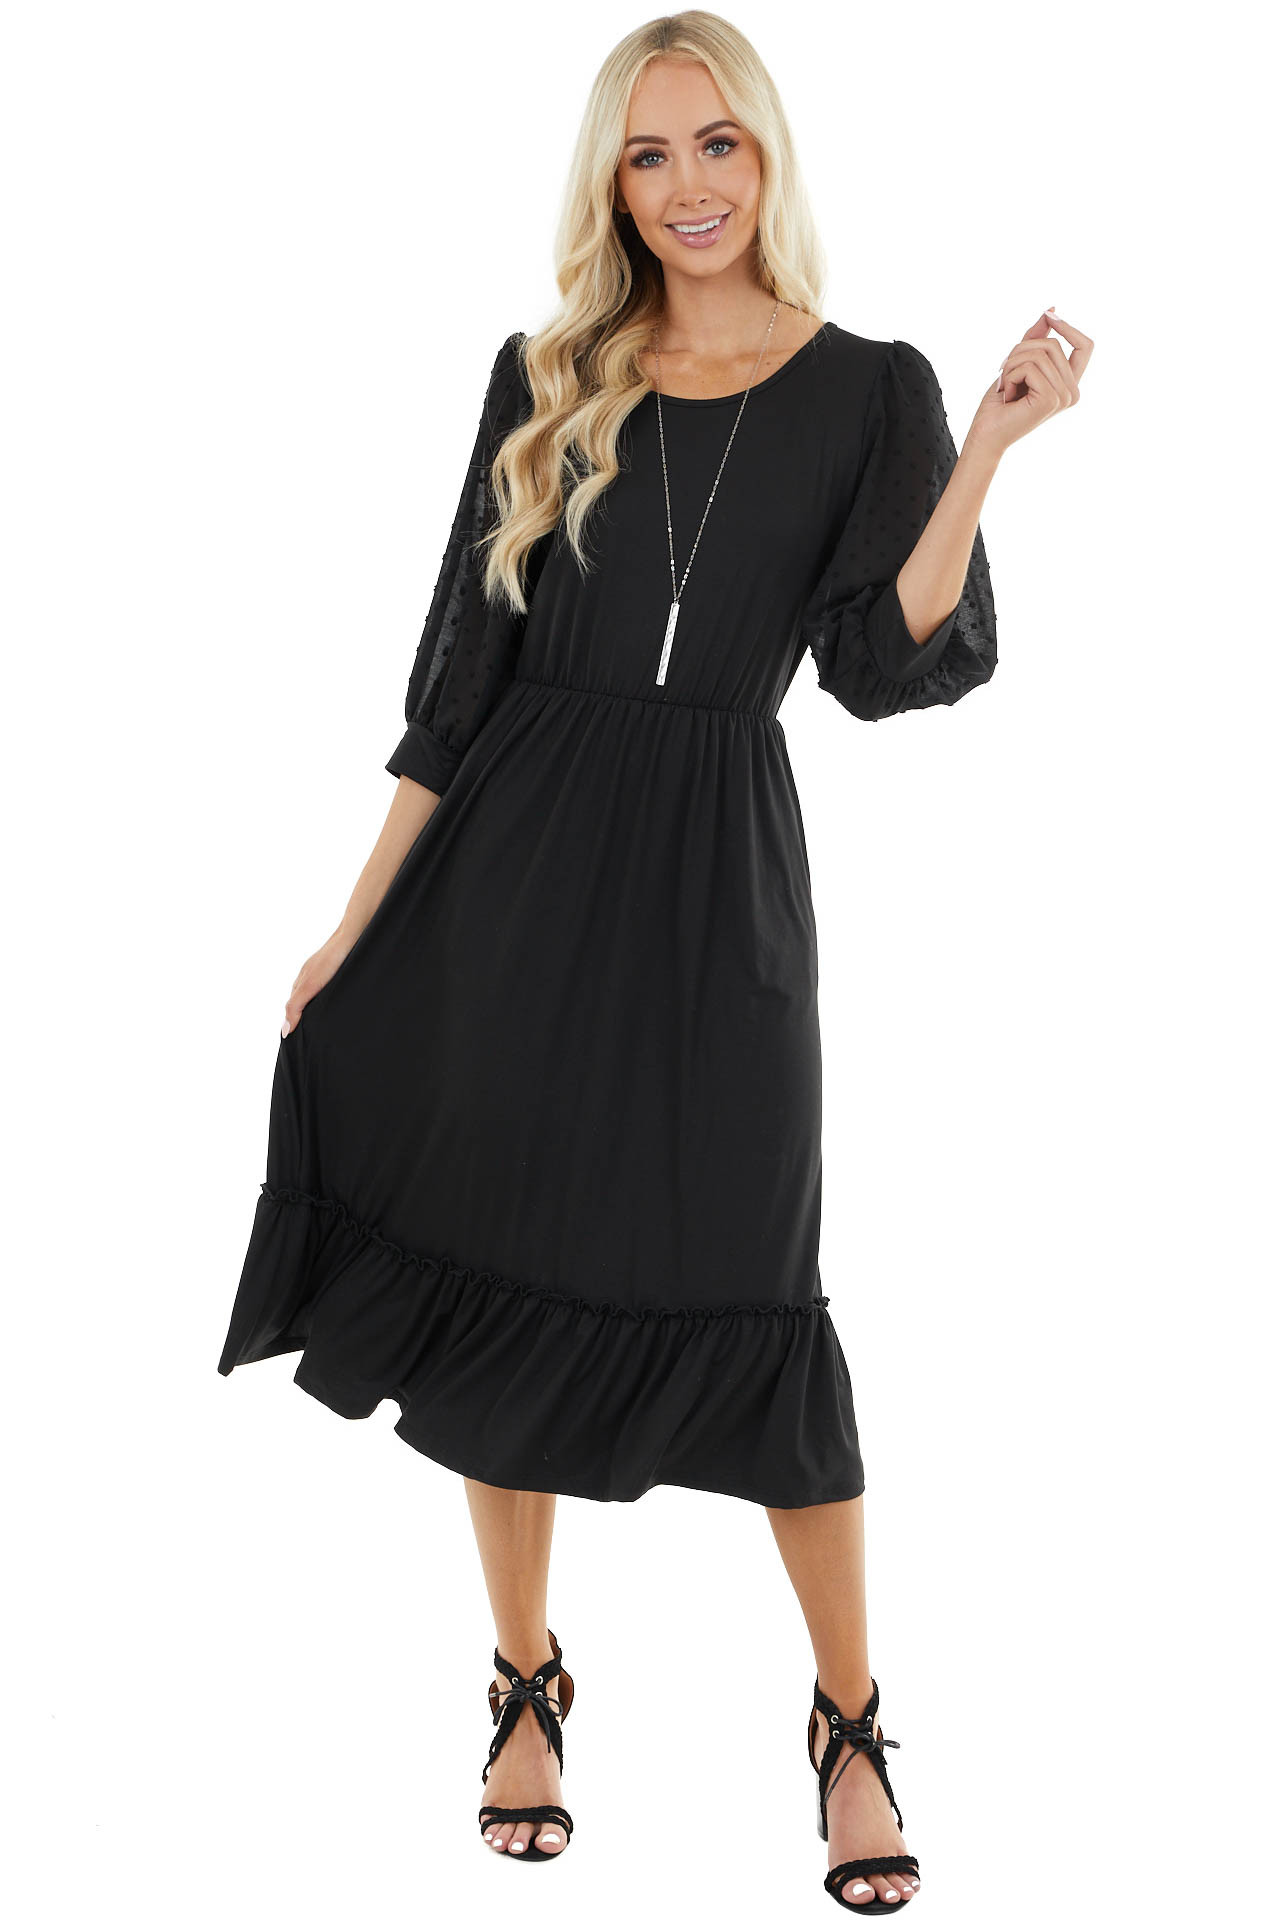 Black Cinch Waist Midi Dress with 3/4 Swiss Dot Puff Sleeves